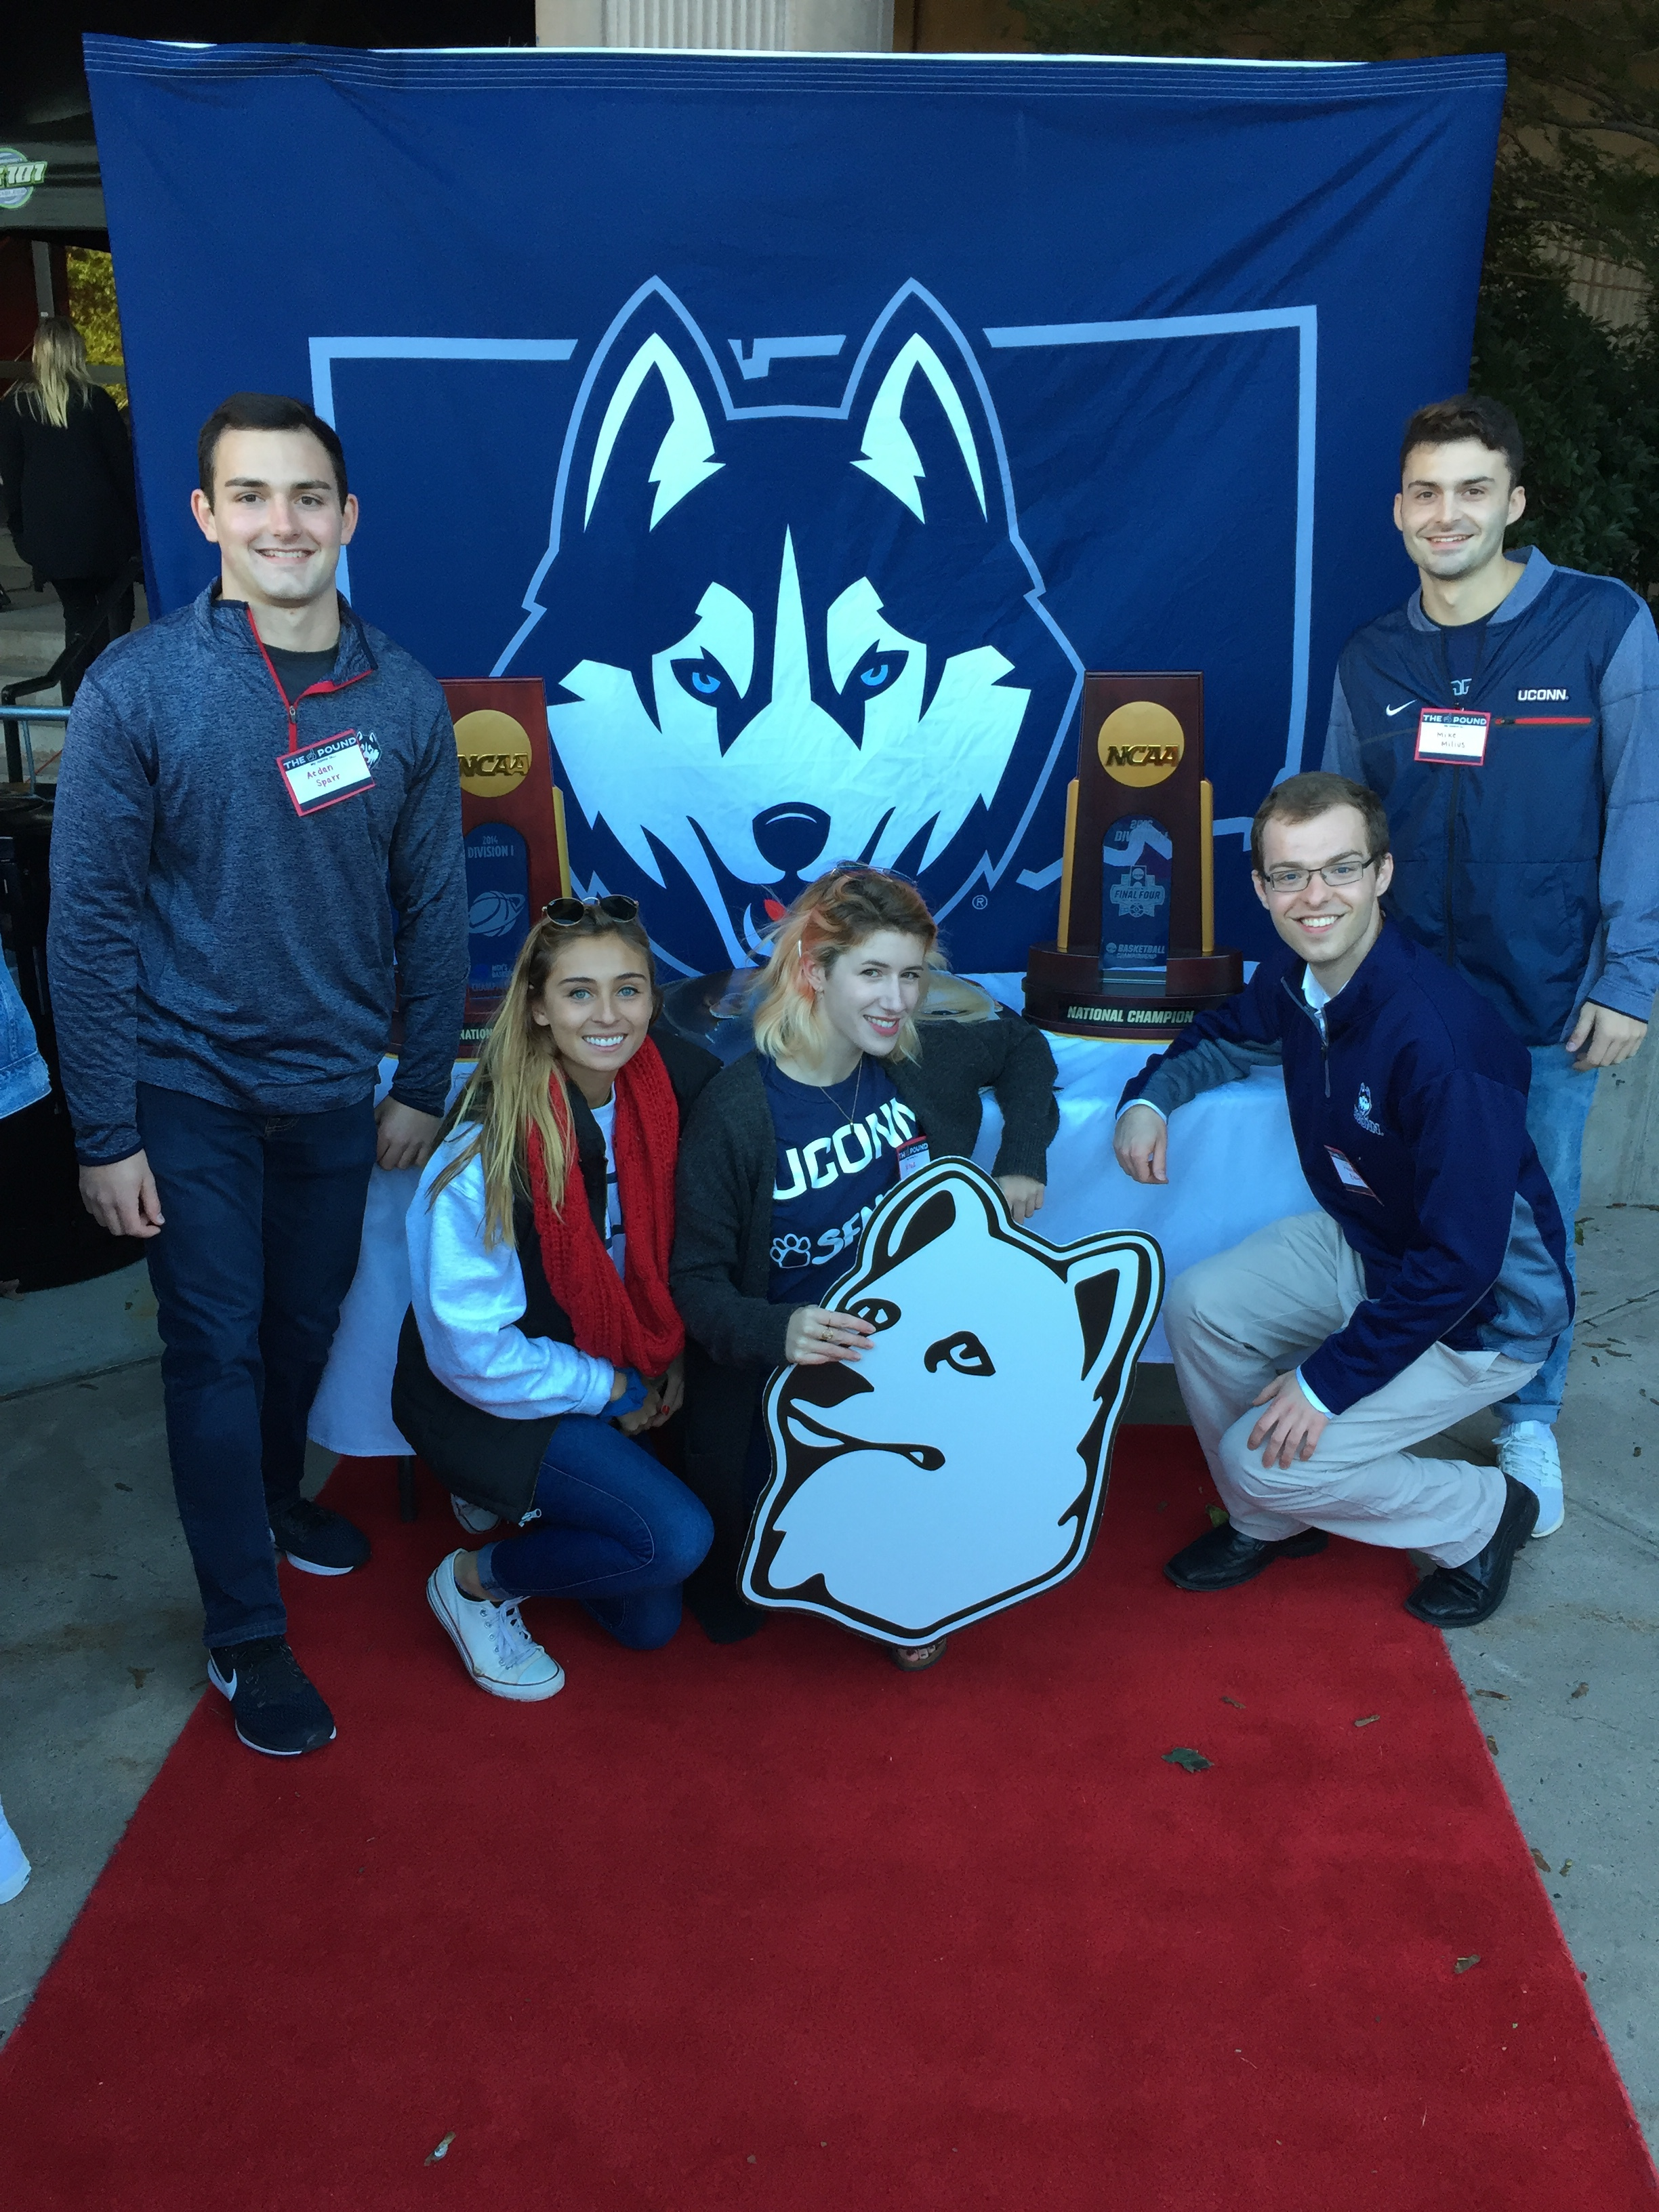 The creative team behind The Pound, a new social media app for UConn's student-athletes. (Photo supplied by writer.)